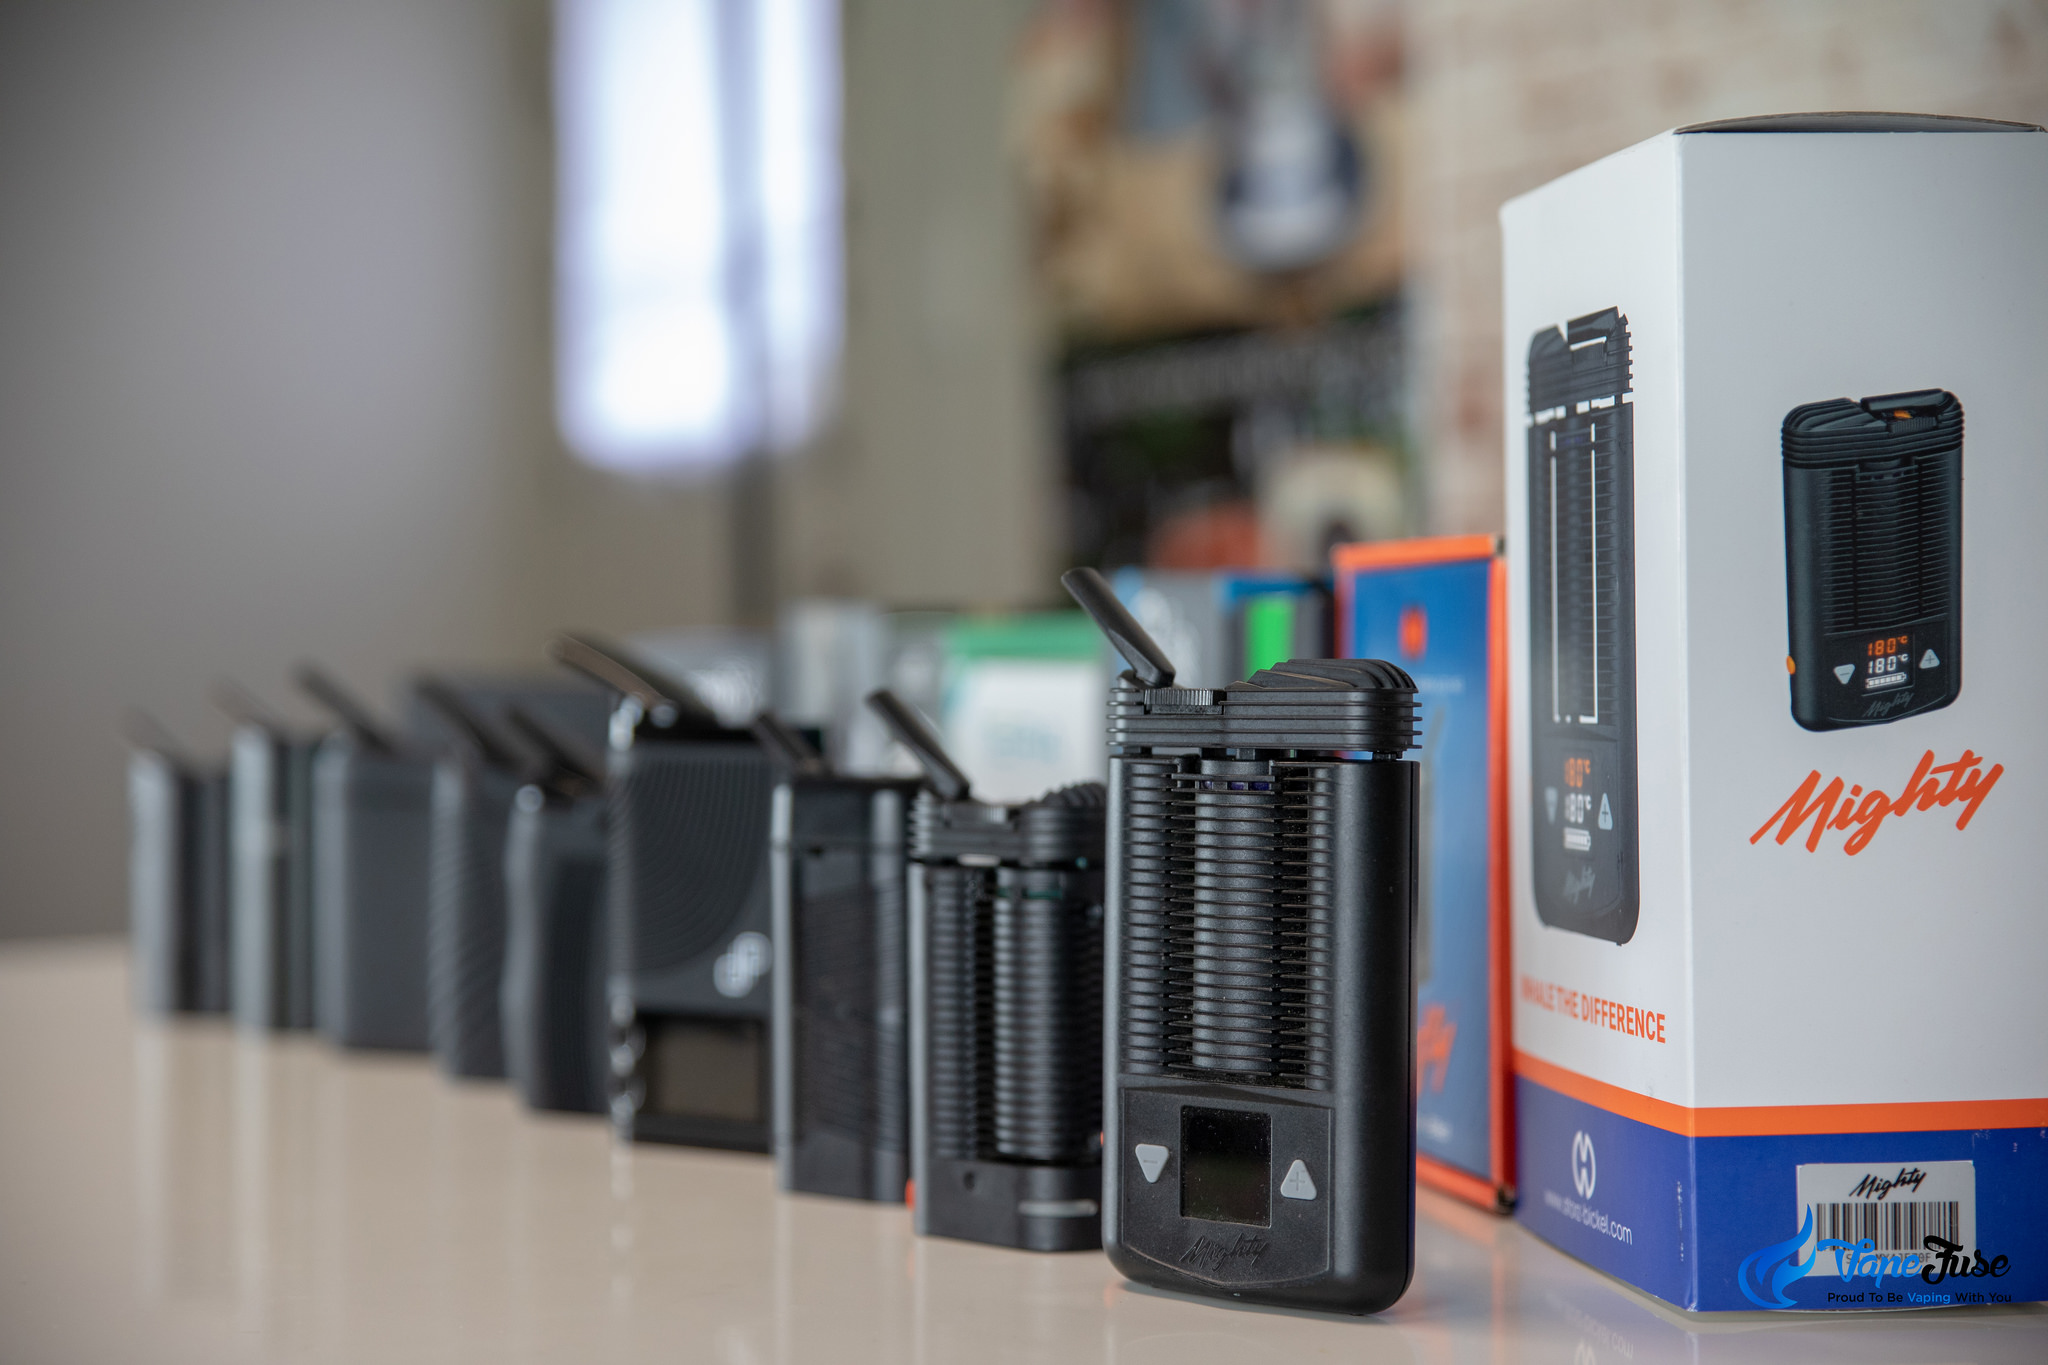 Storz & Bickel Crafty vape line up